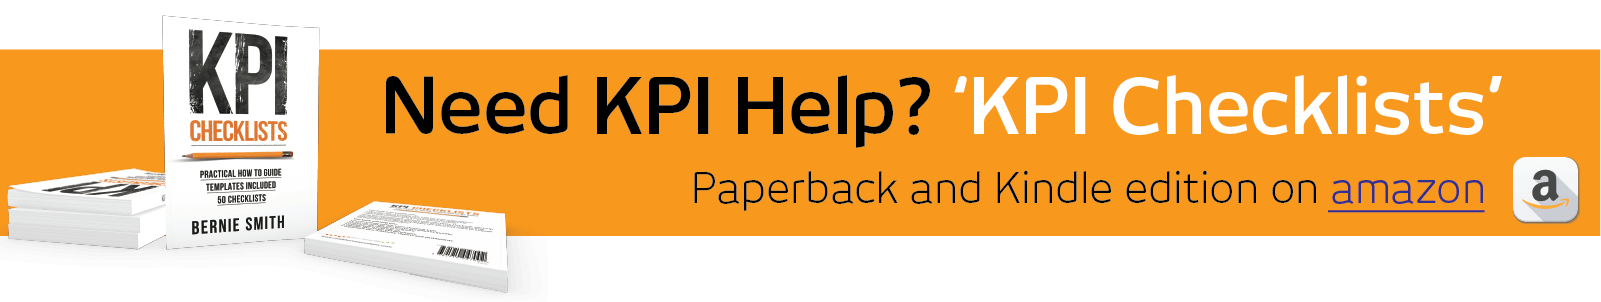 Need KPI help - KPI Checklists book